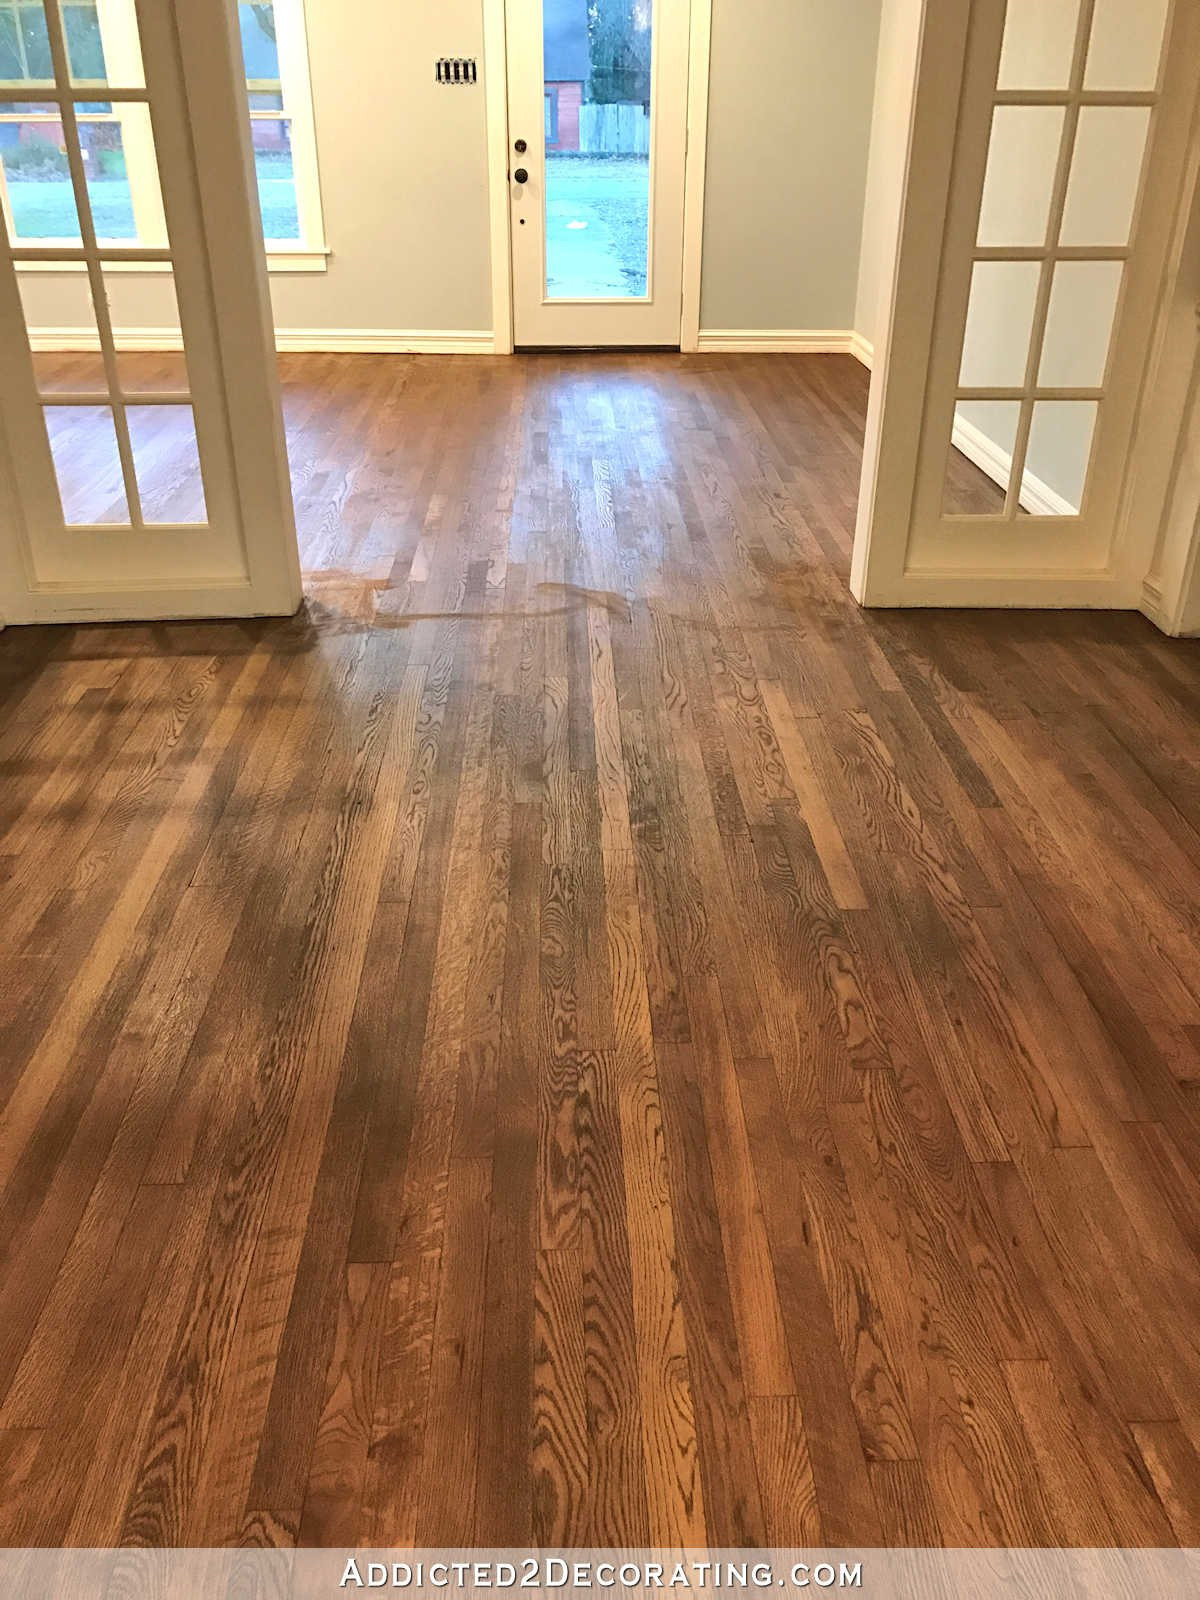 how much to refinish engineered hardwood floors of hardwood floor refinishing products spot refinishing hardwood floors in hardwood floor refinishing products spot refinishing hardwood floors podemosleganes